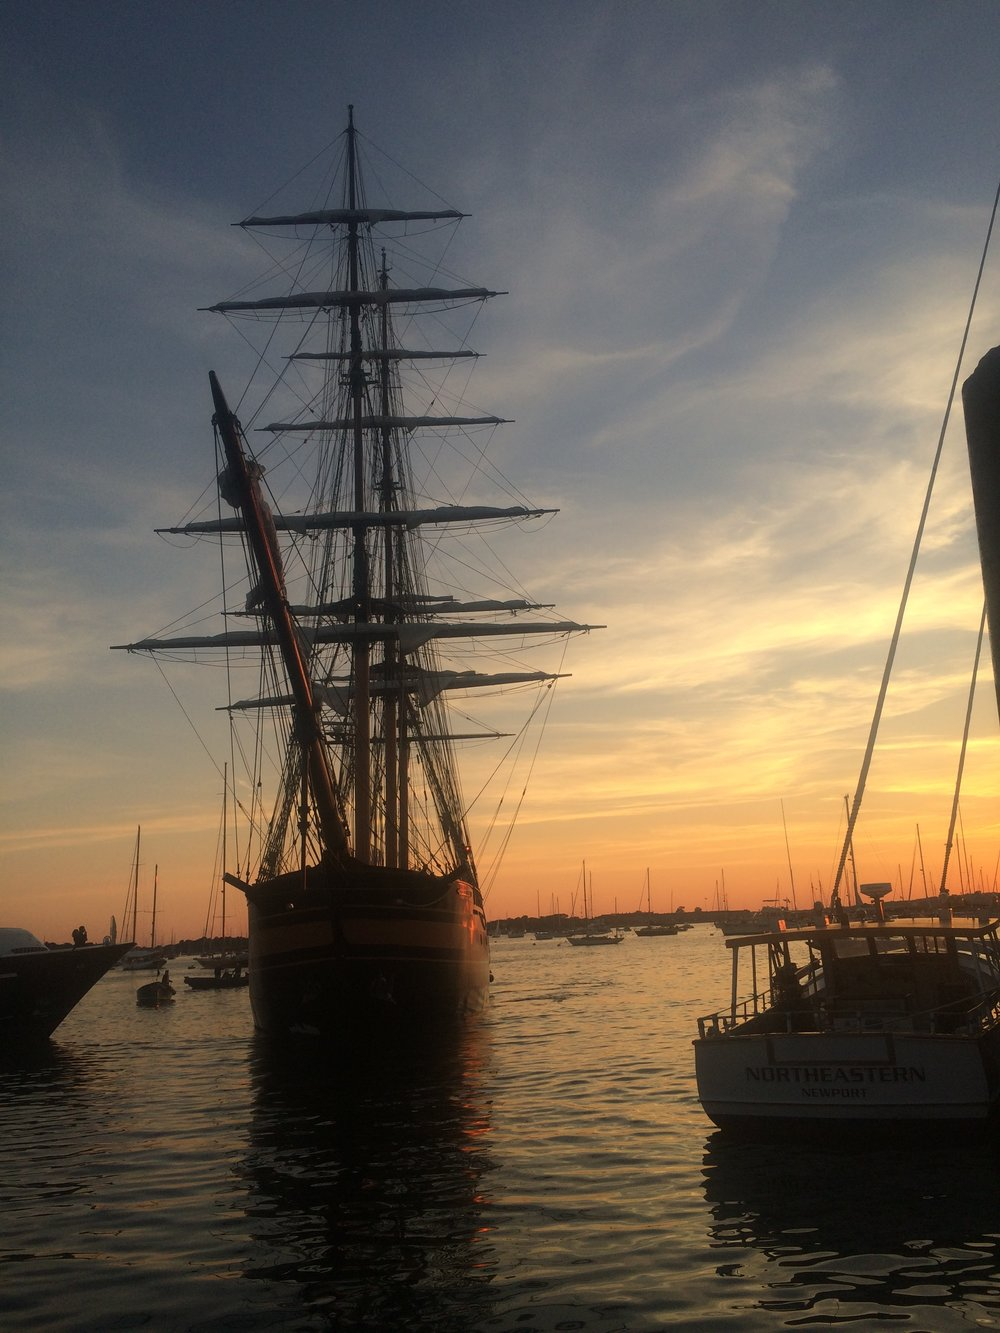 A beautiful sunset with full rigging from 2015